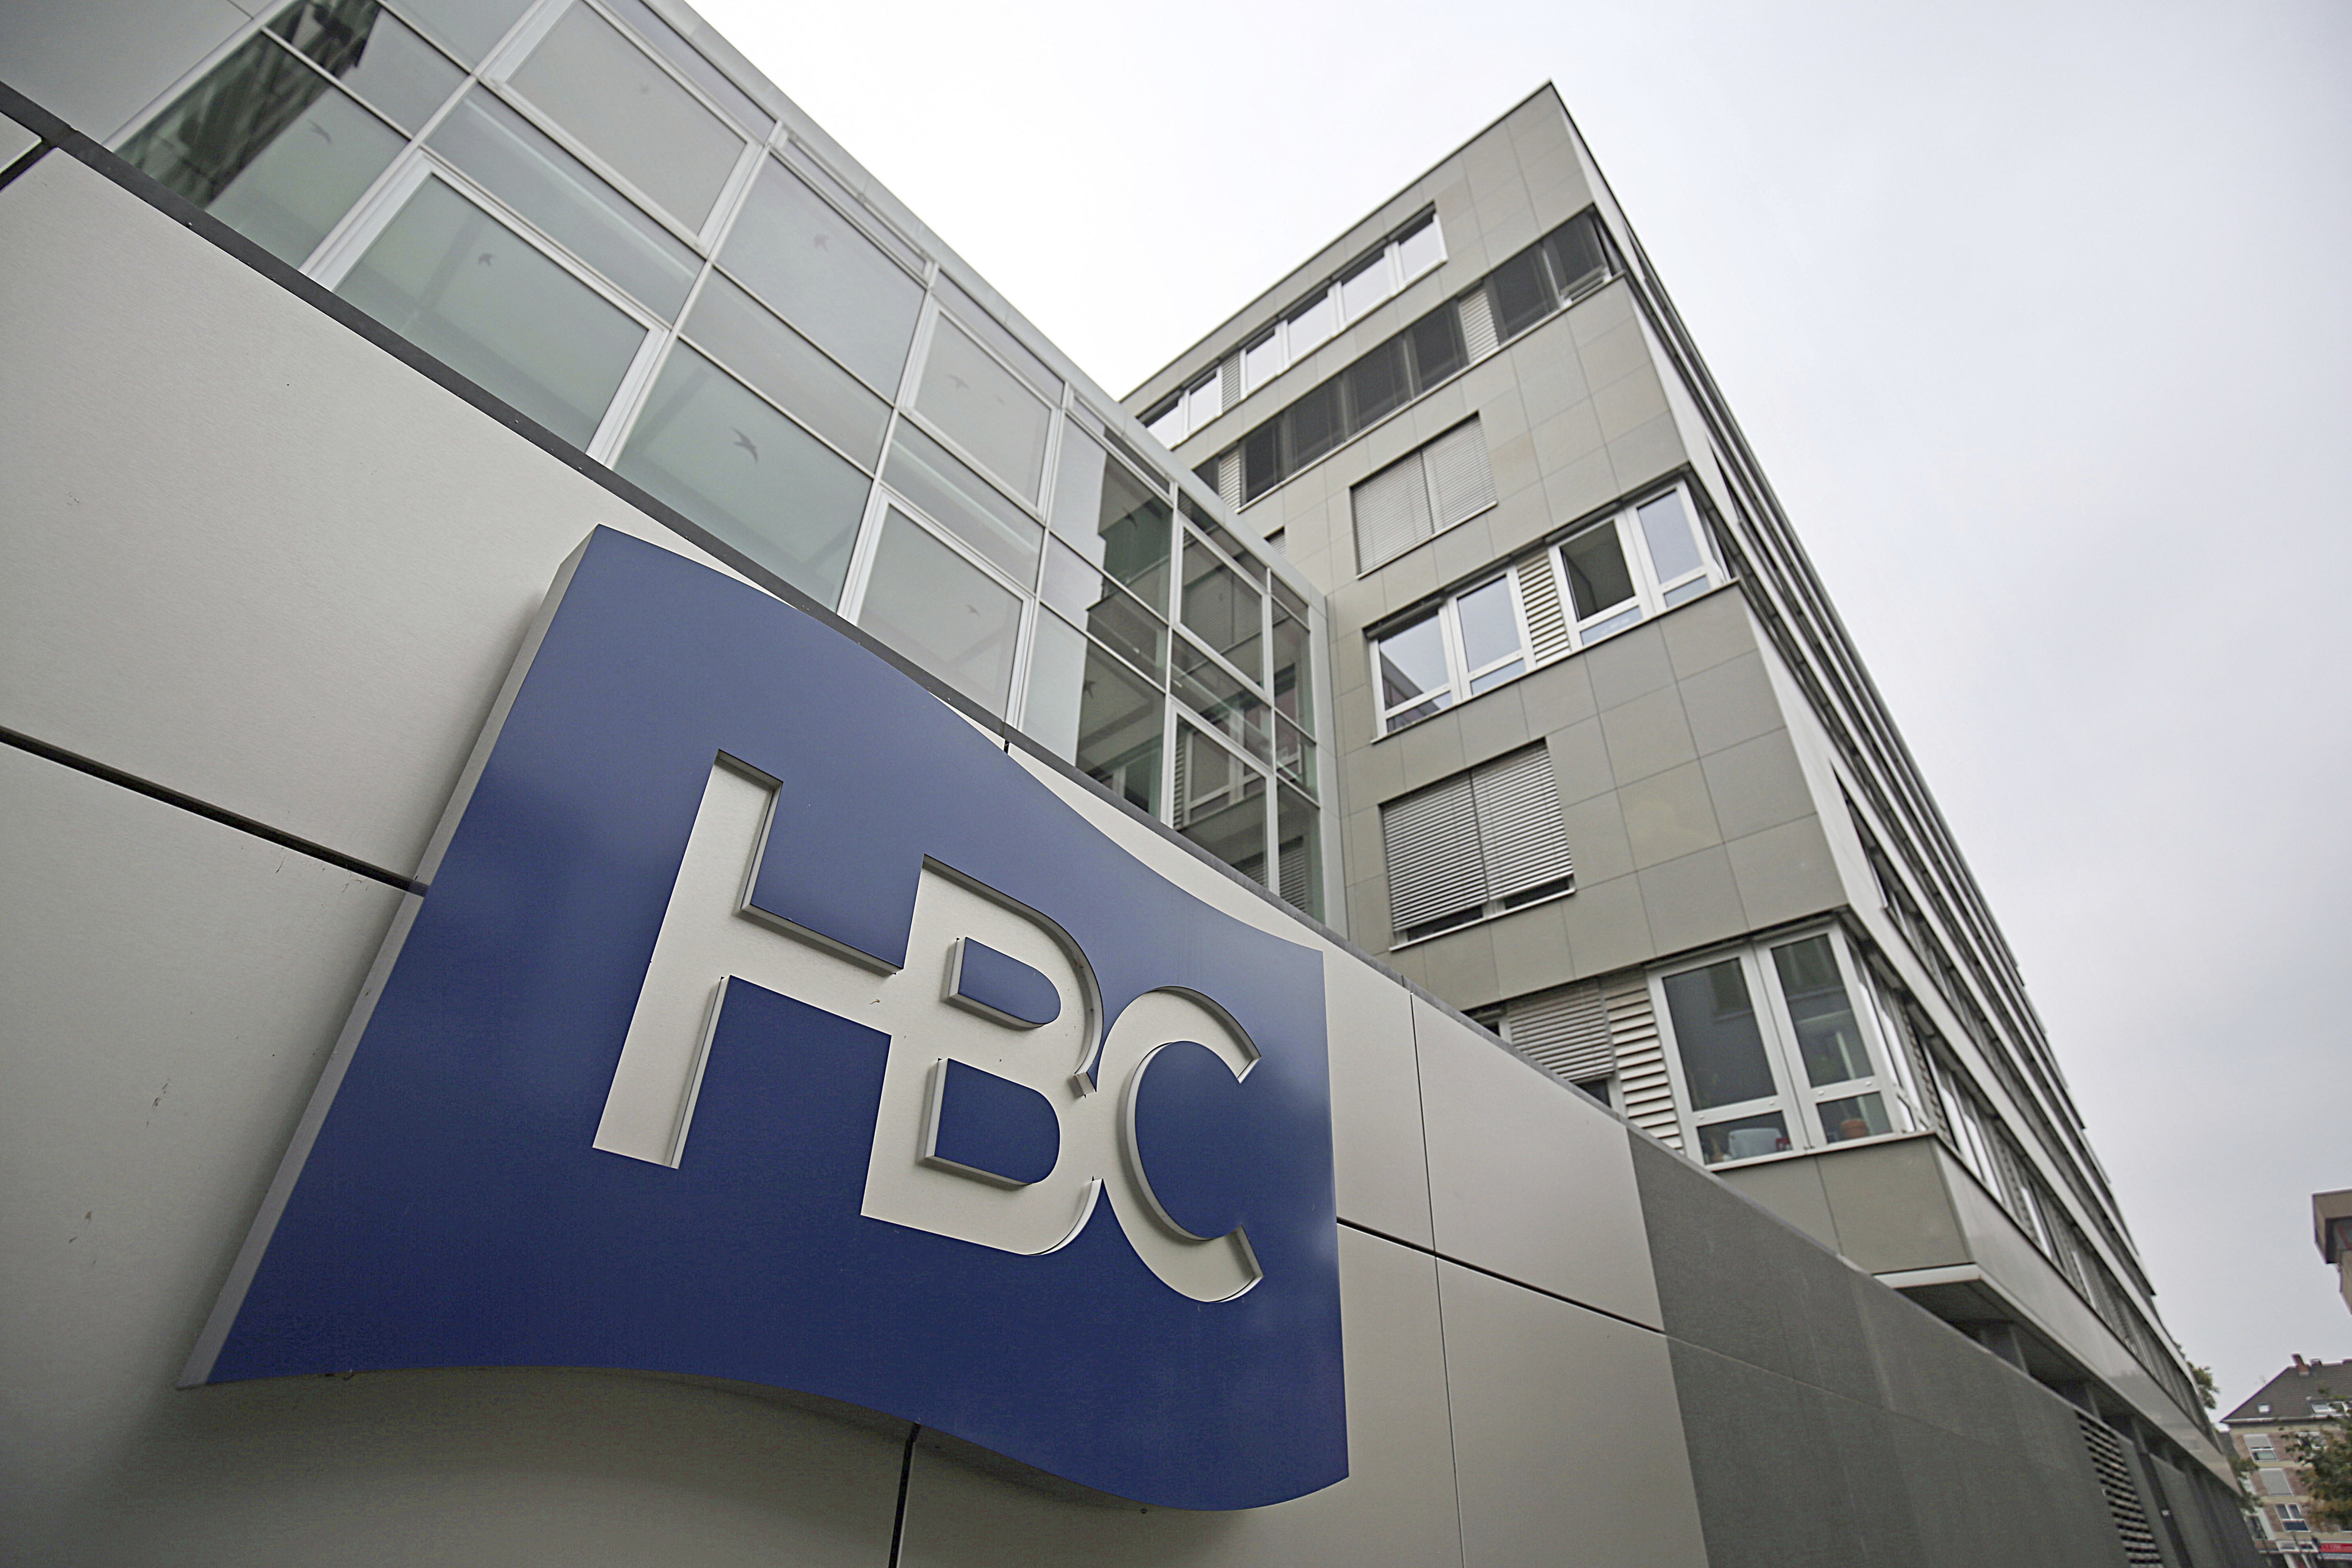 """06 September 2018, Germany,, Cologne: The logo of the Kaufhof parent company, the Canadian Hudson's Bay Company (HBC), is attached to the German headquarters. The planned merger of the Karstadt and Kaufhof department store chains has cleared an important hurdle. The banks had approved the merger of the two retail chains, the """"Sueddeutsche Zeitung"""" reported on 6 September 2018. Photo by: Oliver Berg/picture-alliance/dpa/AP Images"""